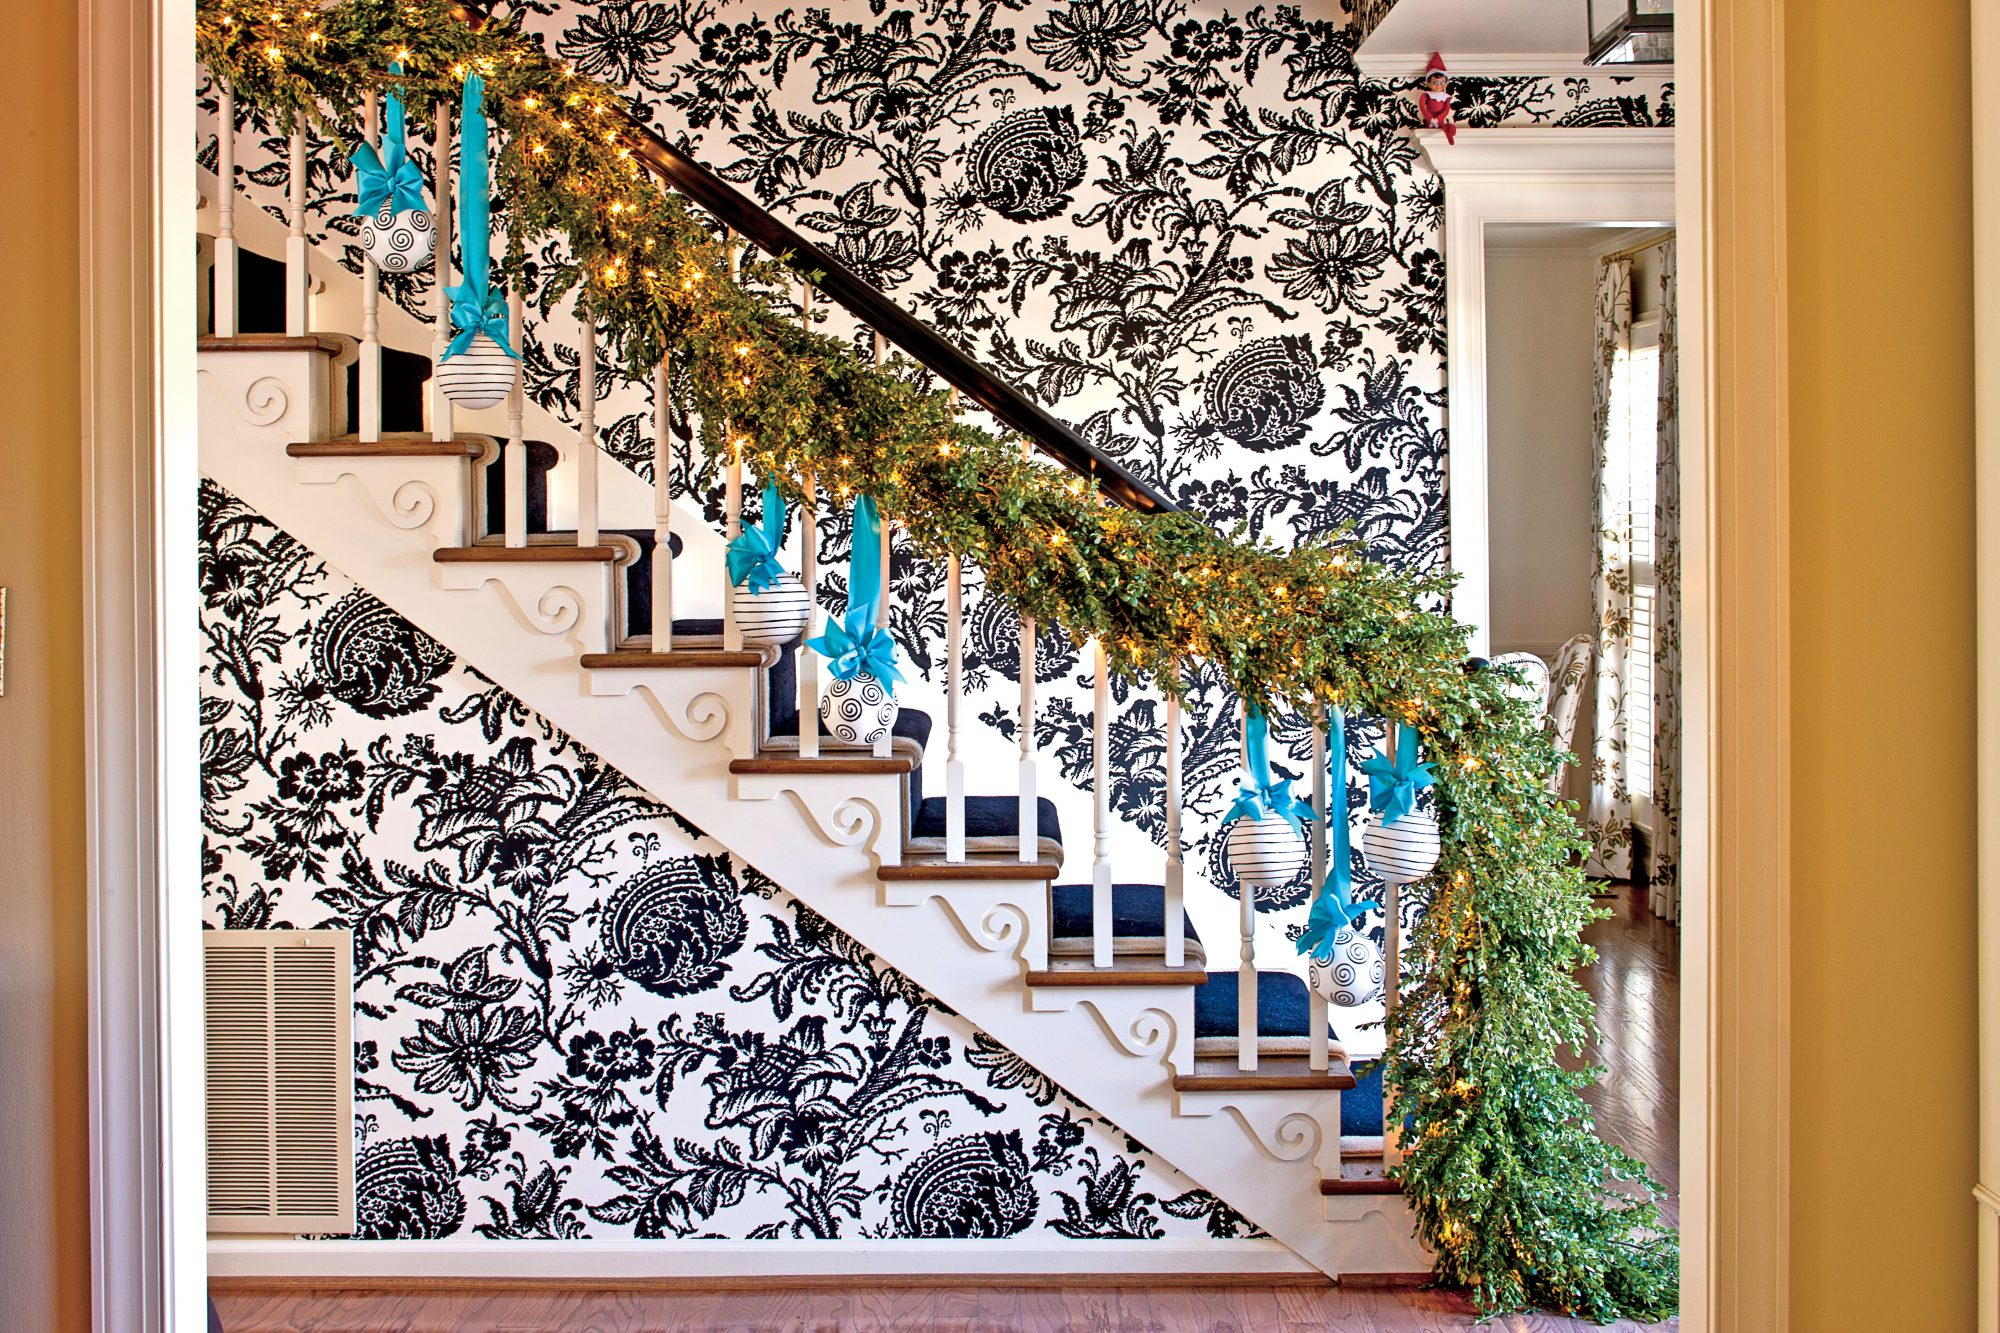 Black and White Wallpaper with Sparkling Greenery on Staircase